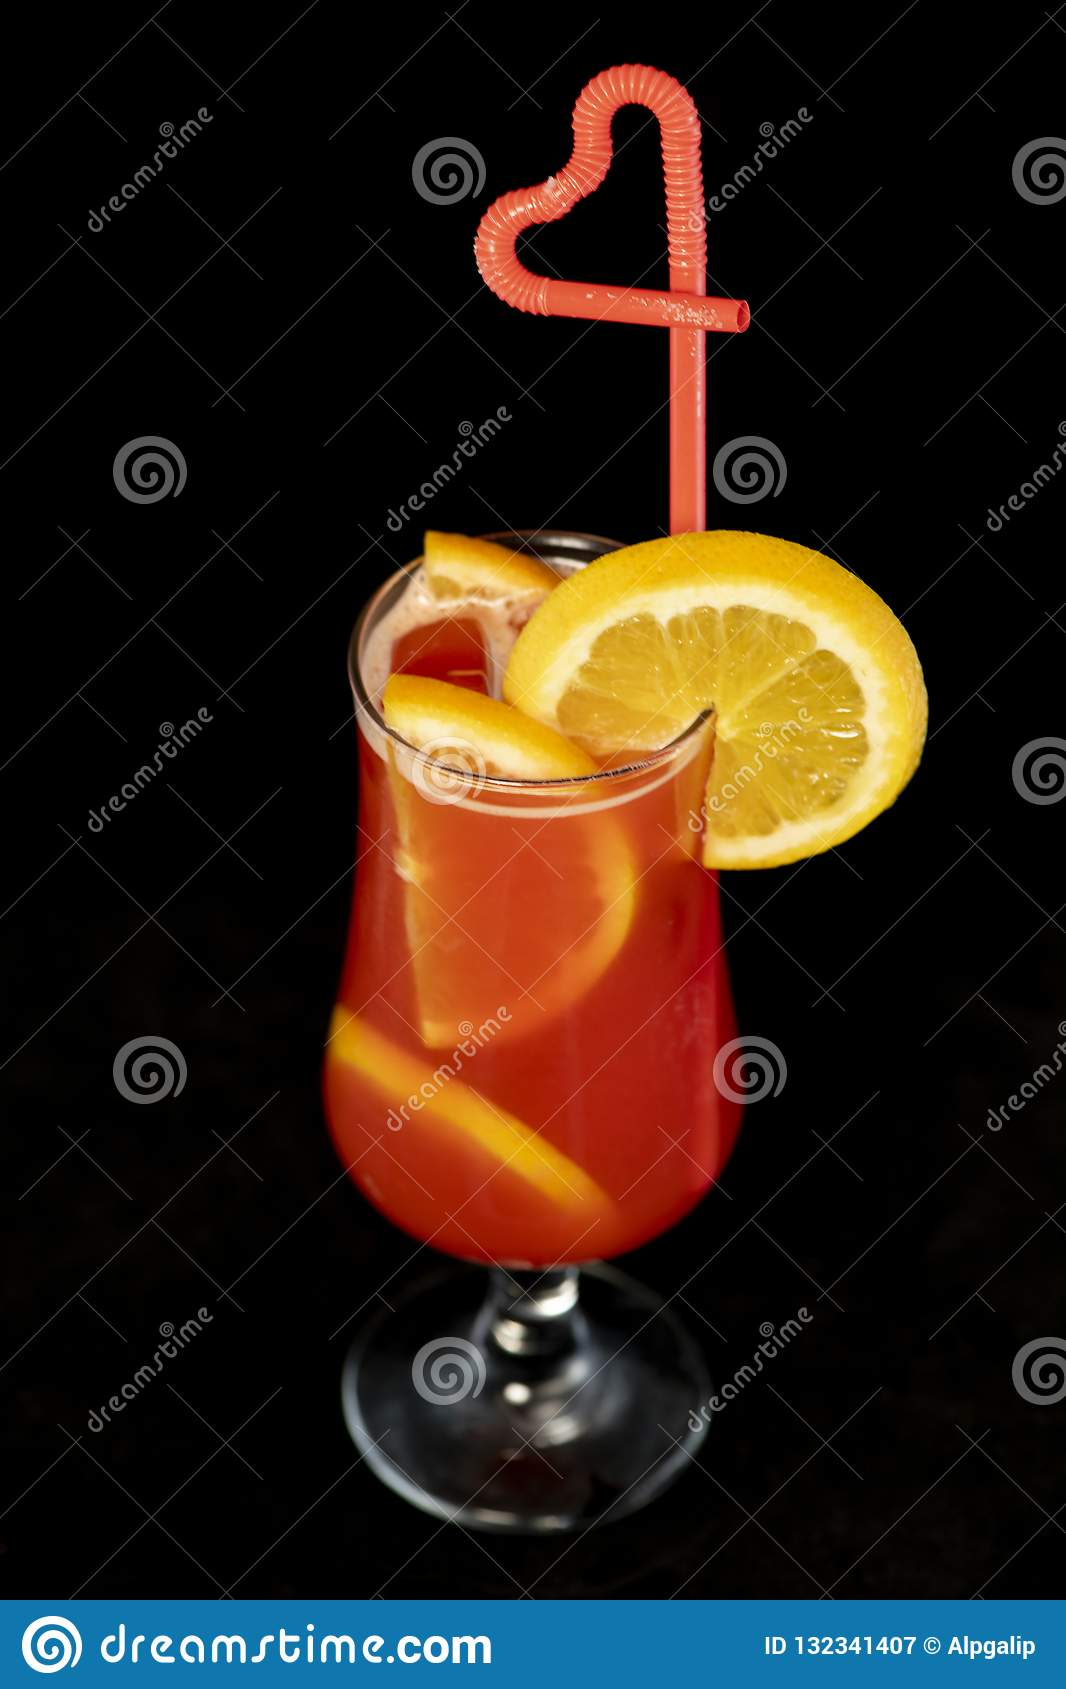 Alcoholic cocktail with lemons inside and lemon wedge on the glass with straw